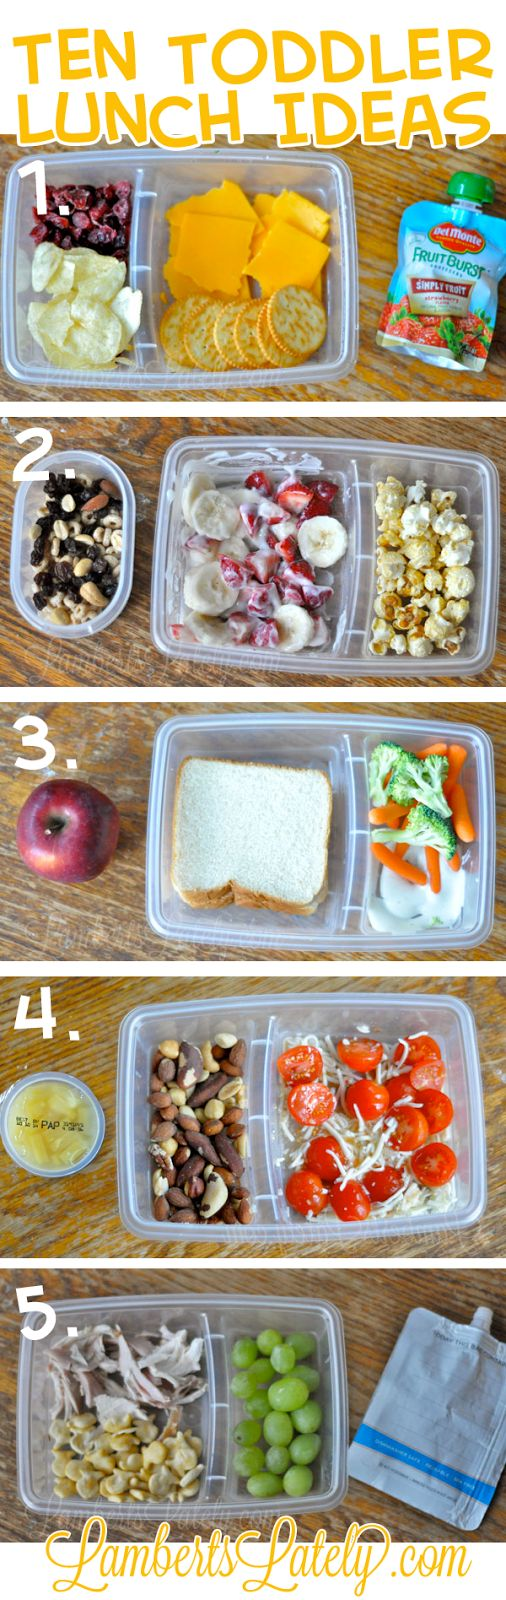 Ten (Quick and Easy) Toddler School Lunch Ideas (Brought to you by Del Monte)